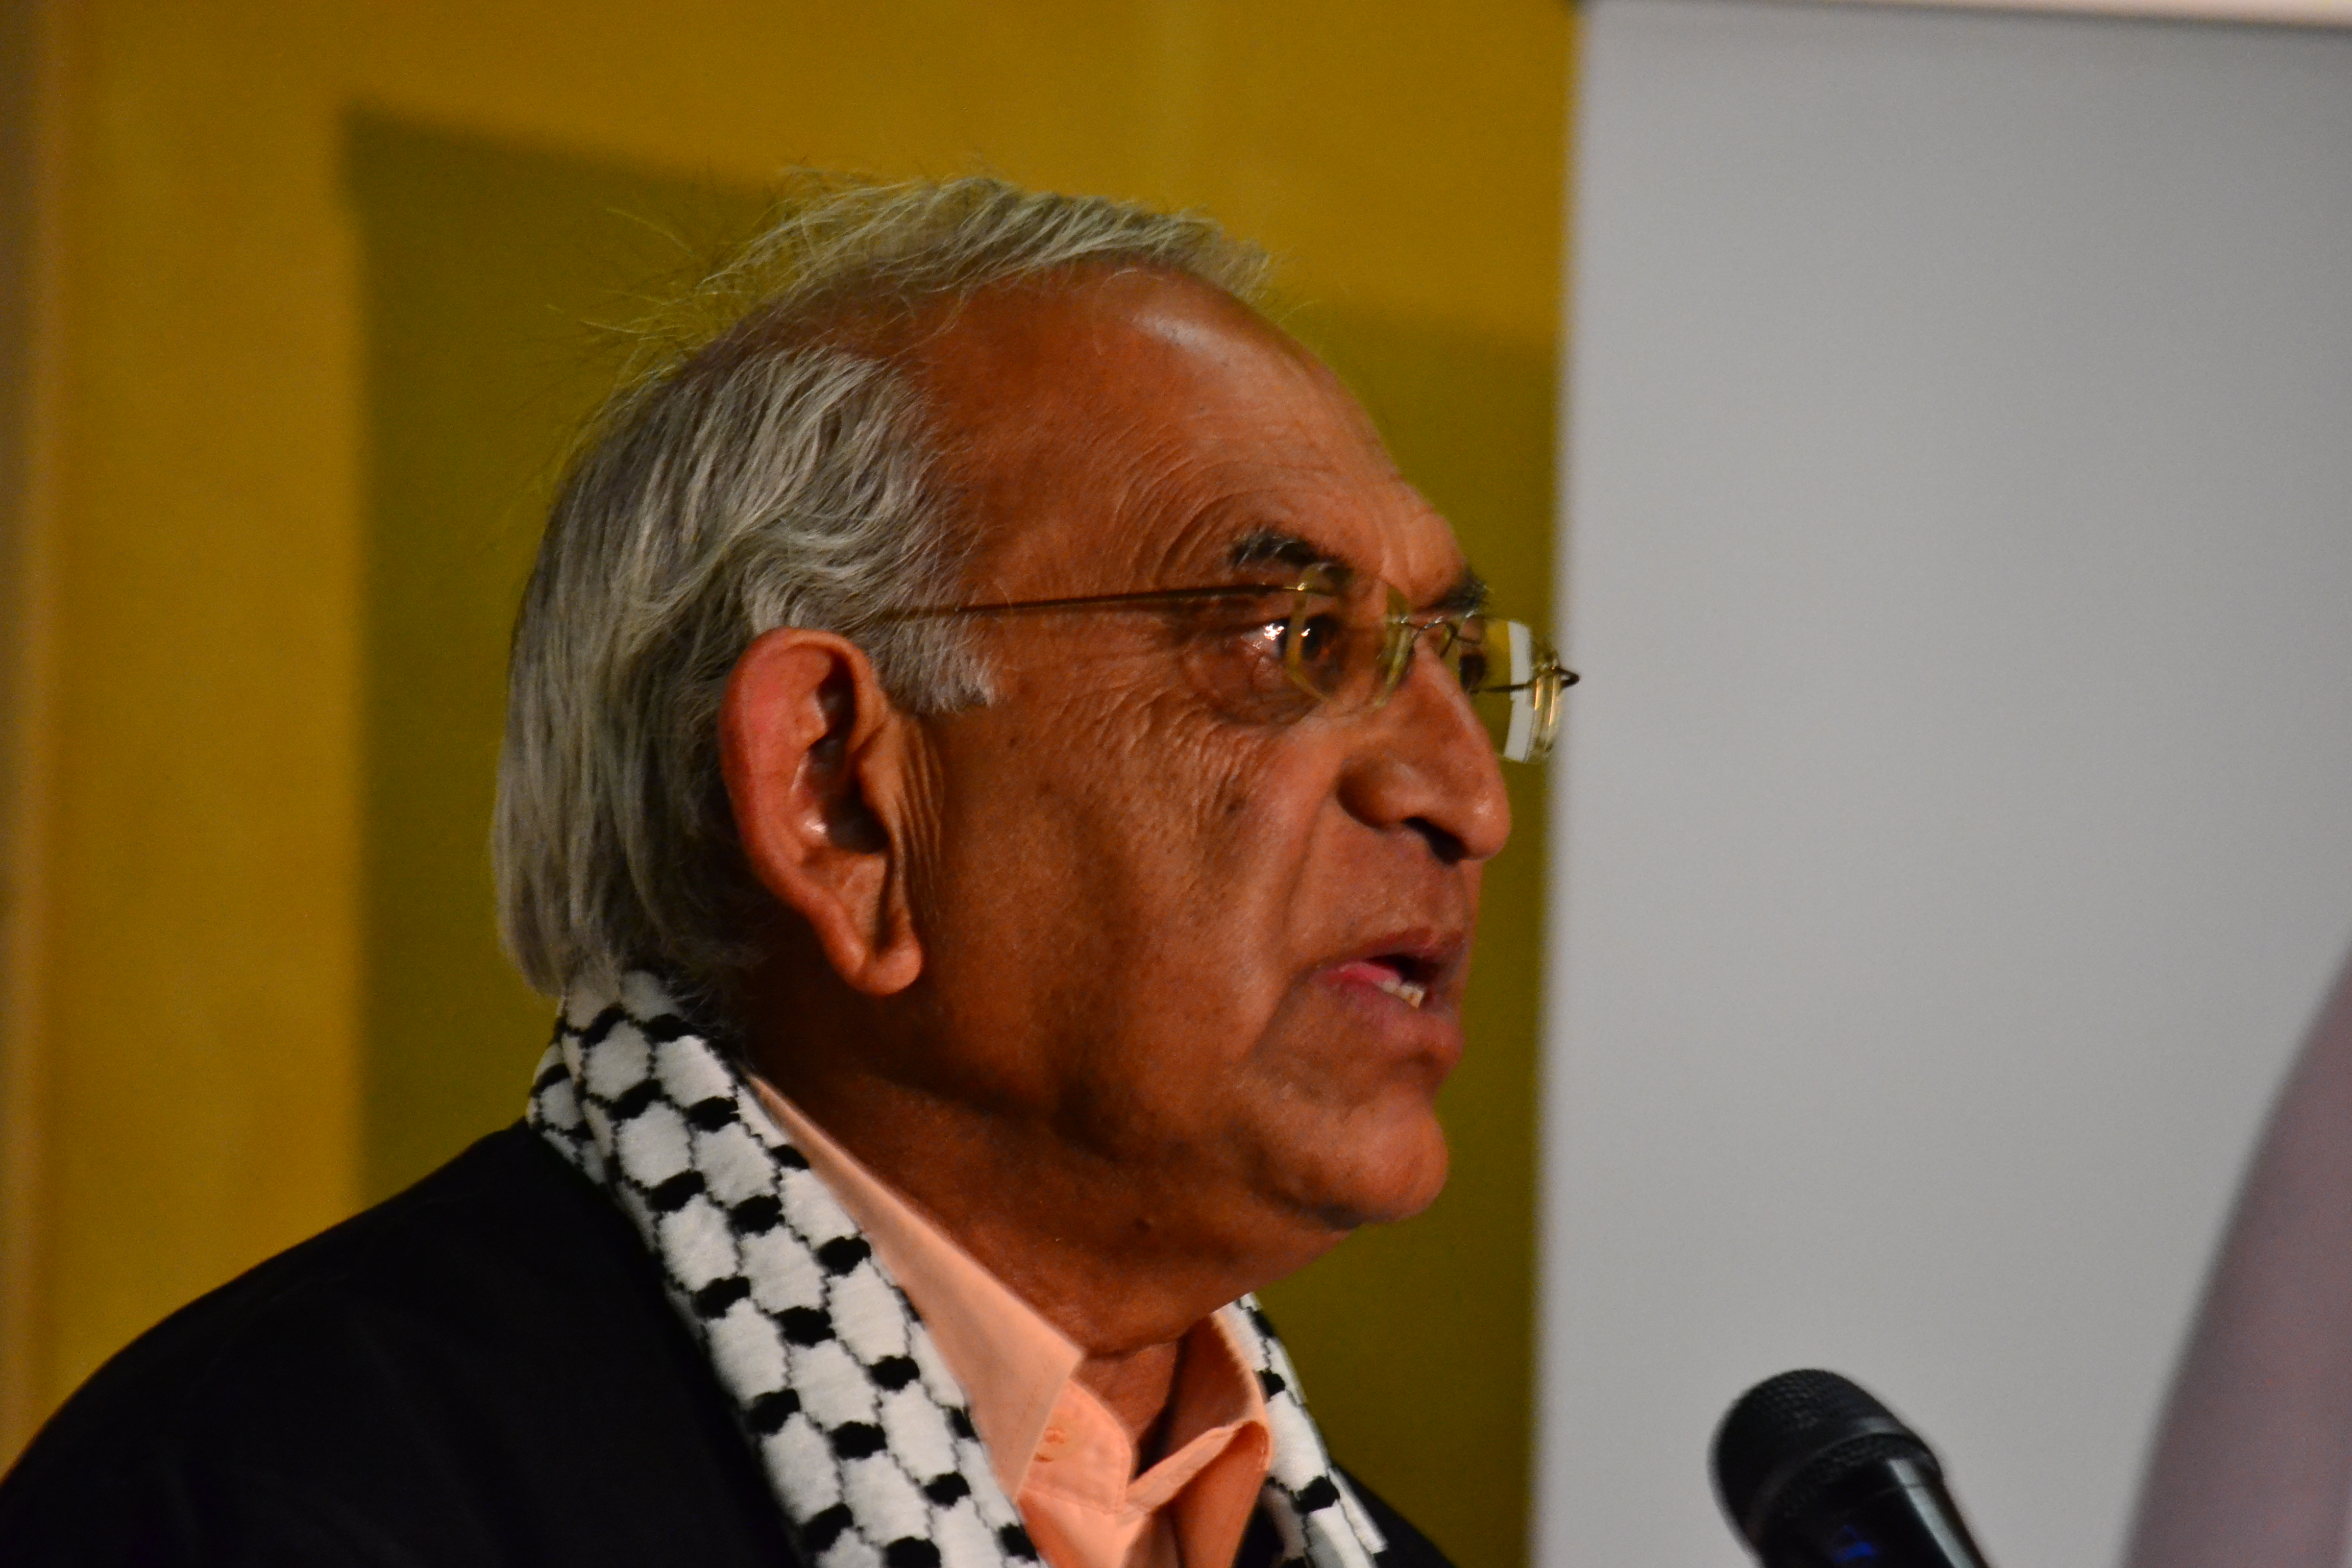 PRESS RELEASE: South African Activist, Iqbal Jassat, to be Honoured at International Palestine Media Conference